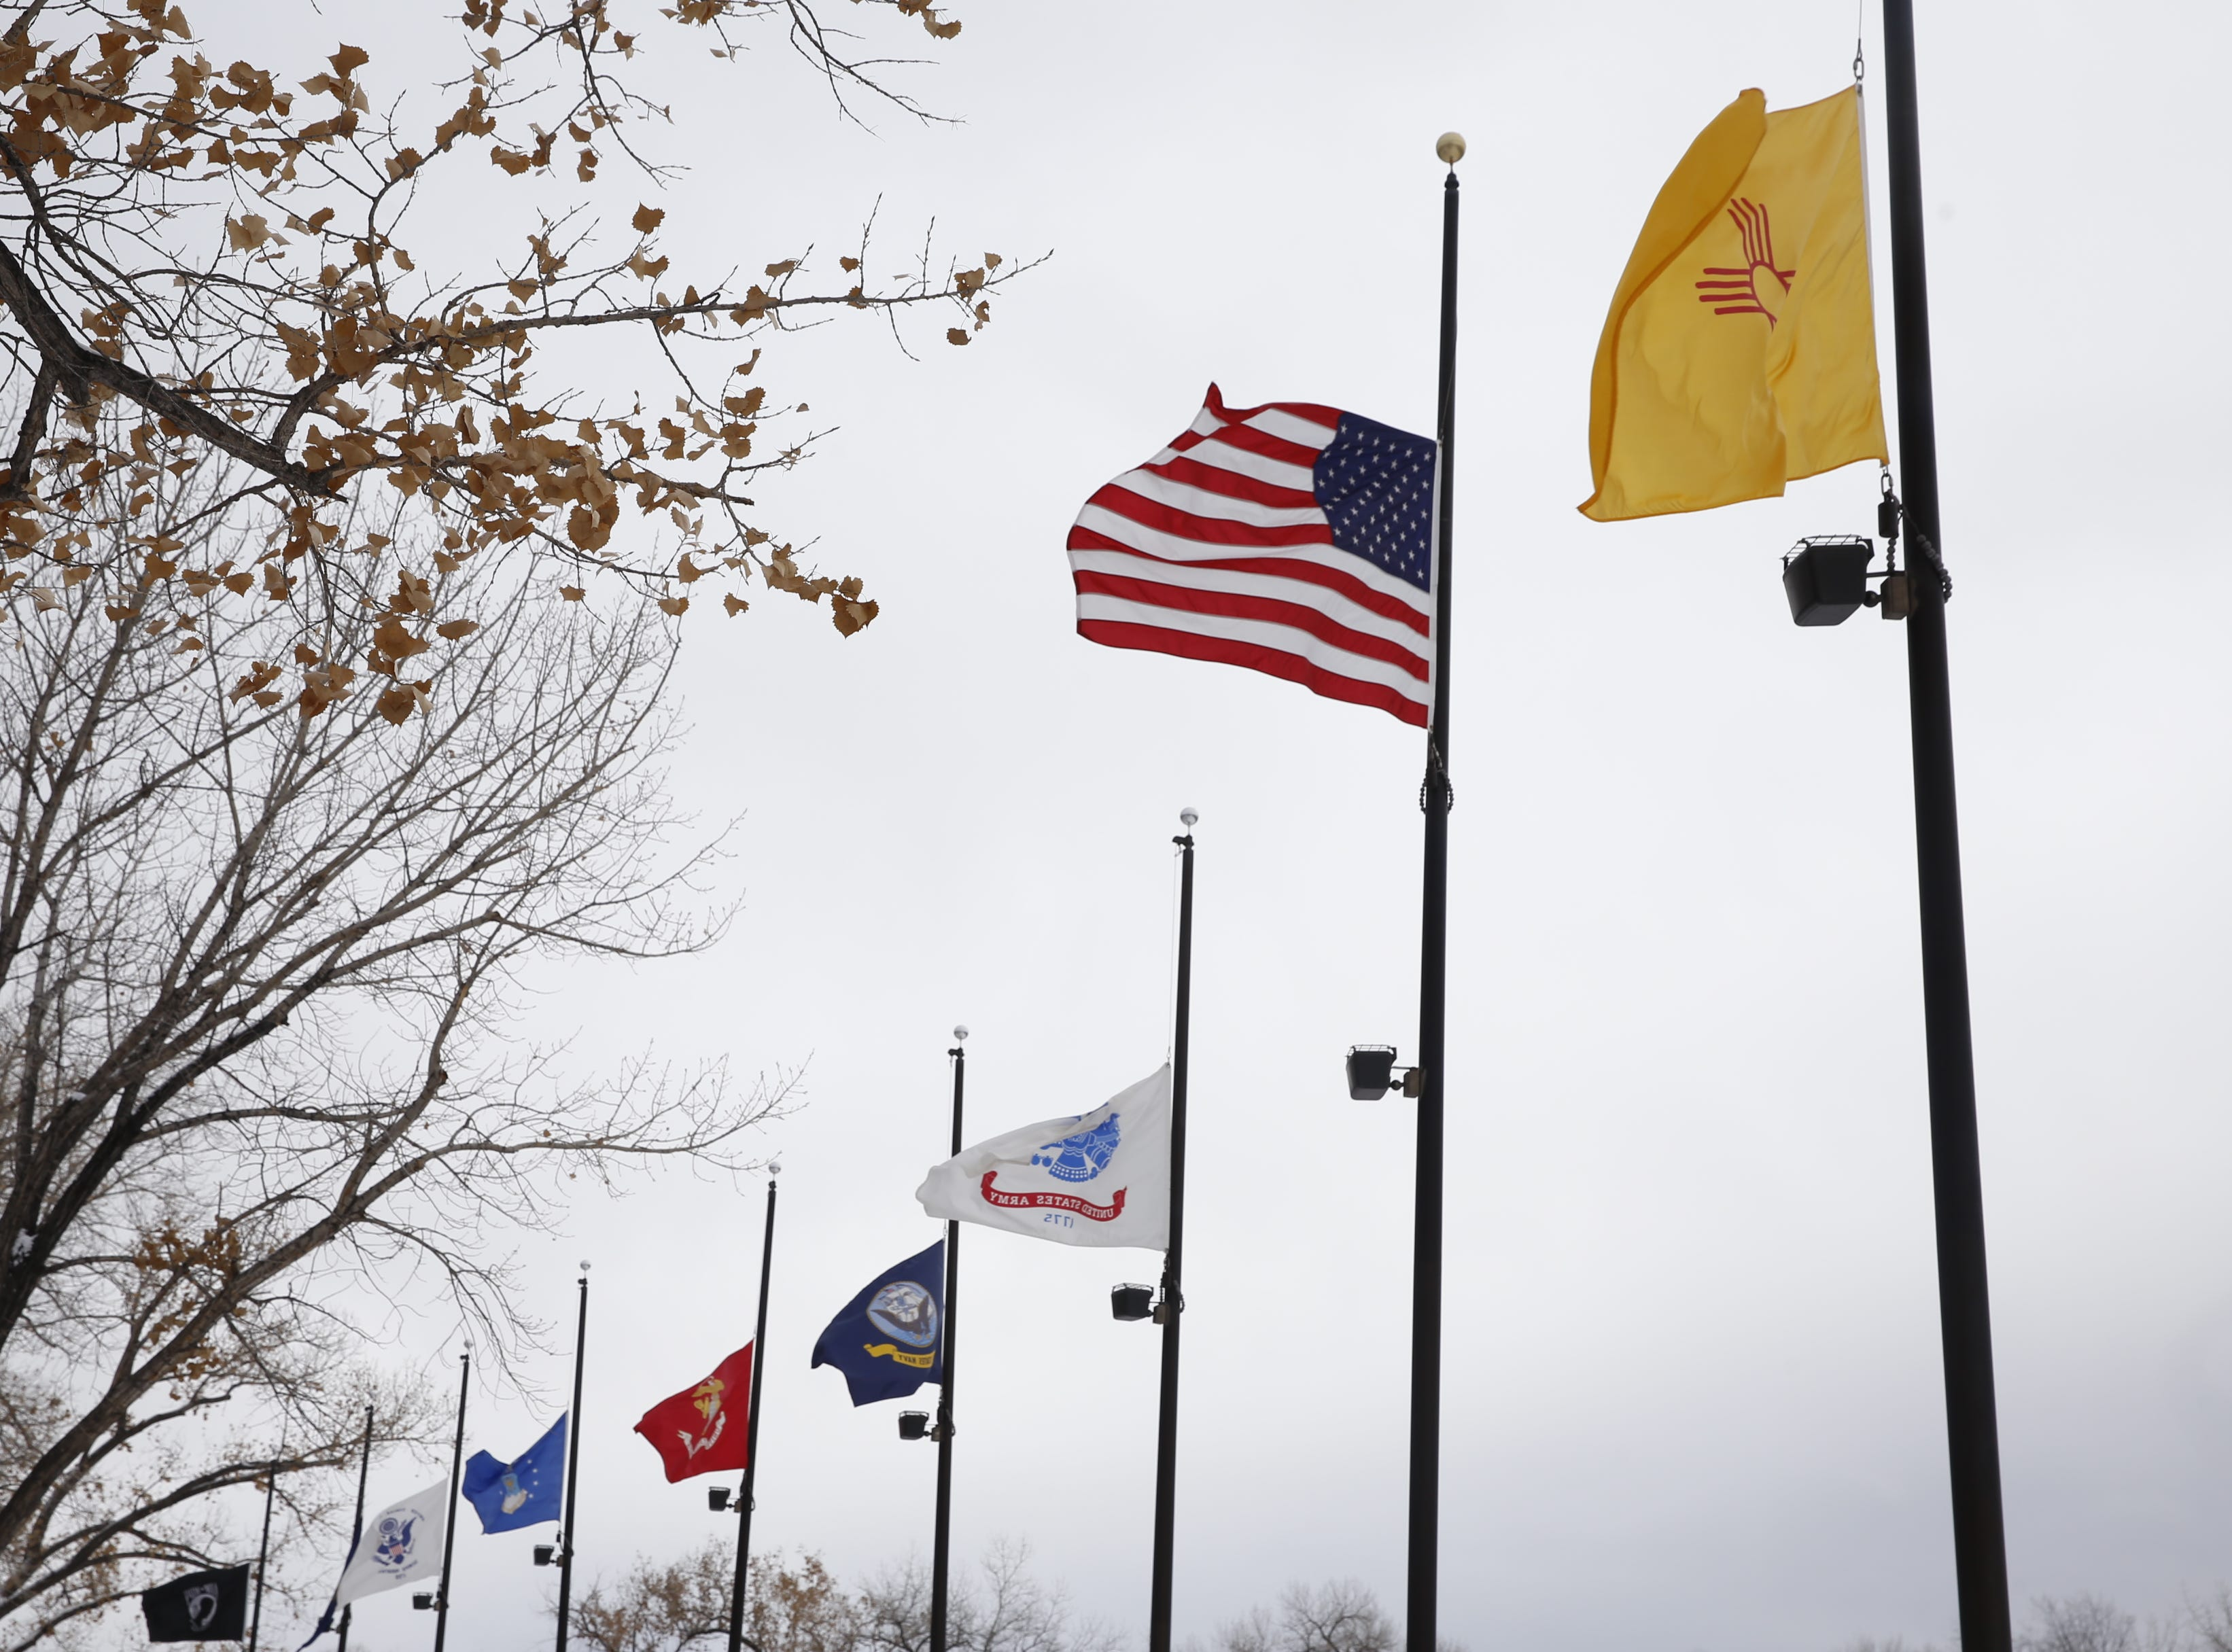 The wind chill remained low on Friday as a winter storm warning from the National Weather Service remain in effect for Farmington.